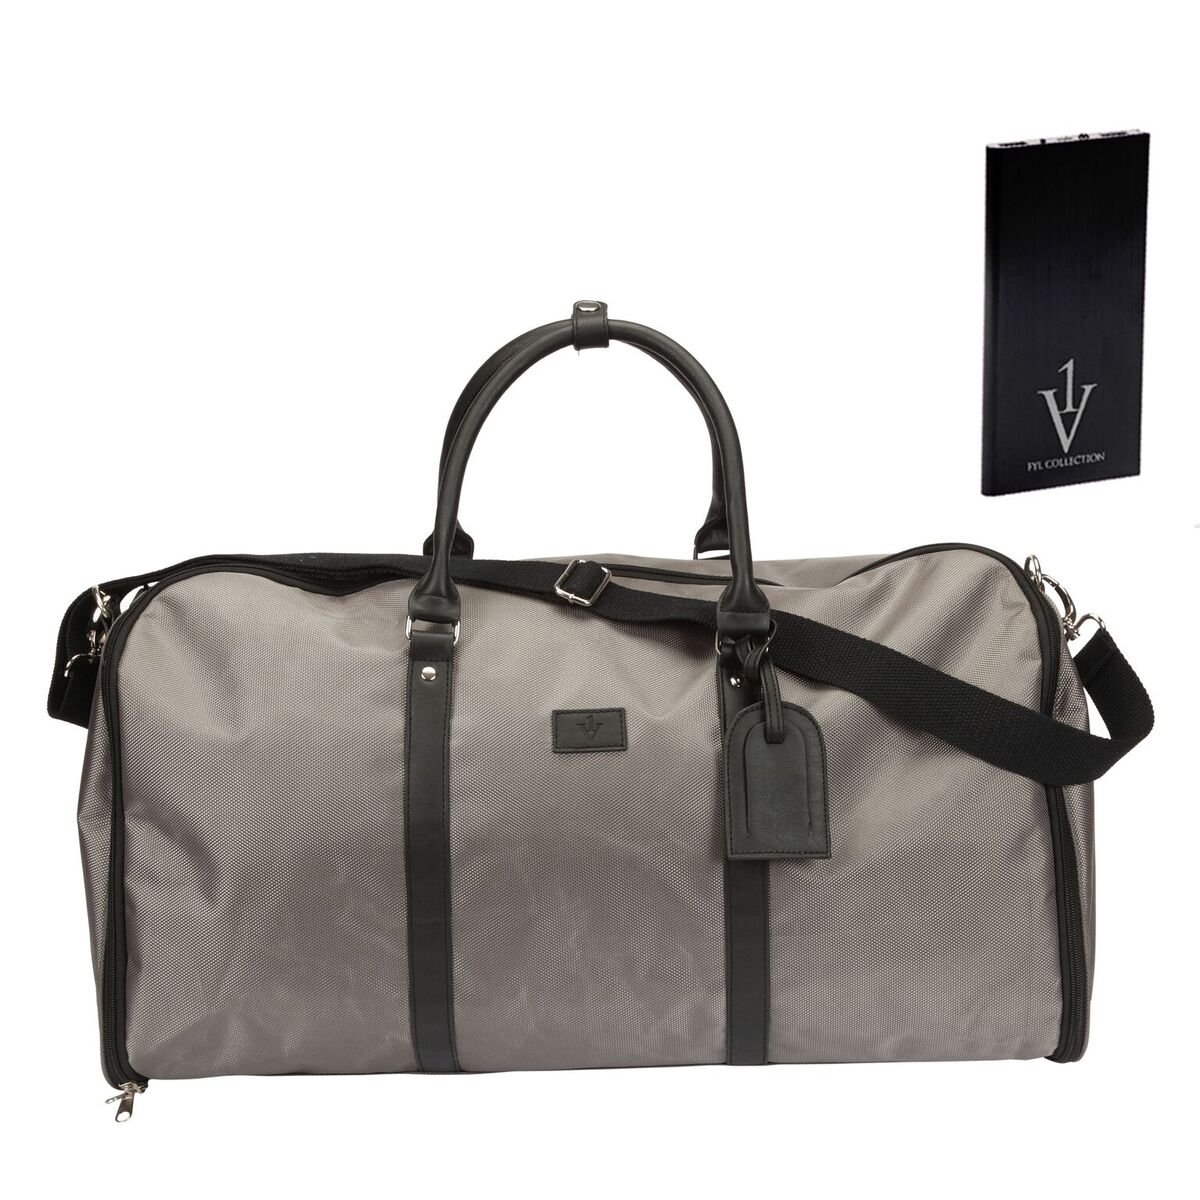 Convertible Garment Duffle Bag for Men|Carry On Suit Travel Bags|With Powerbank